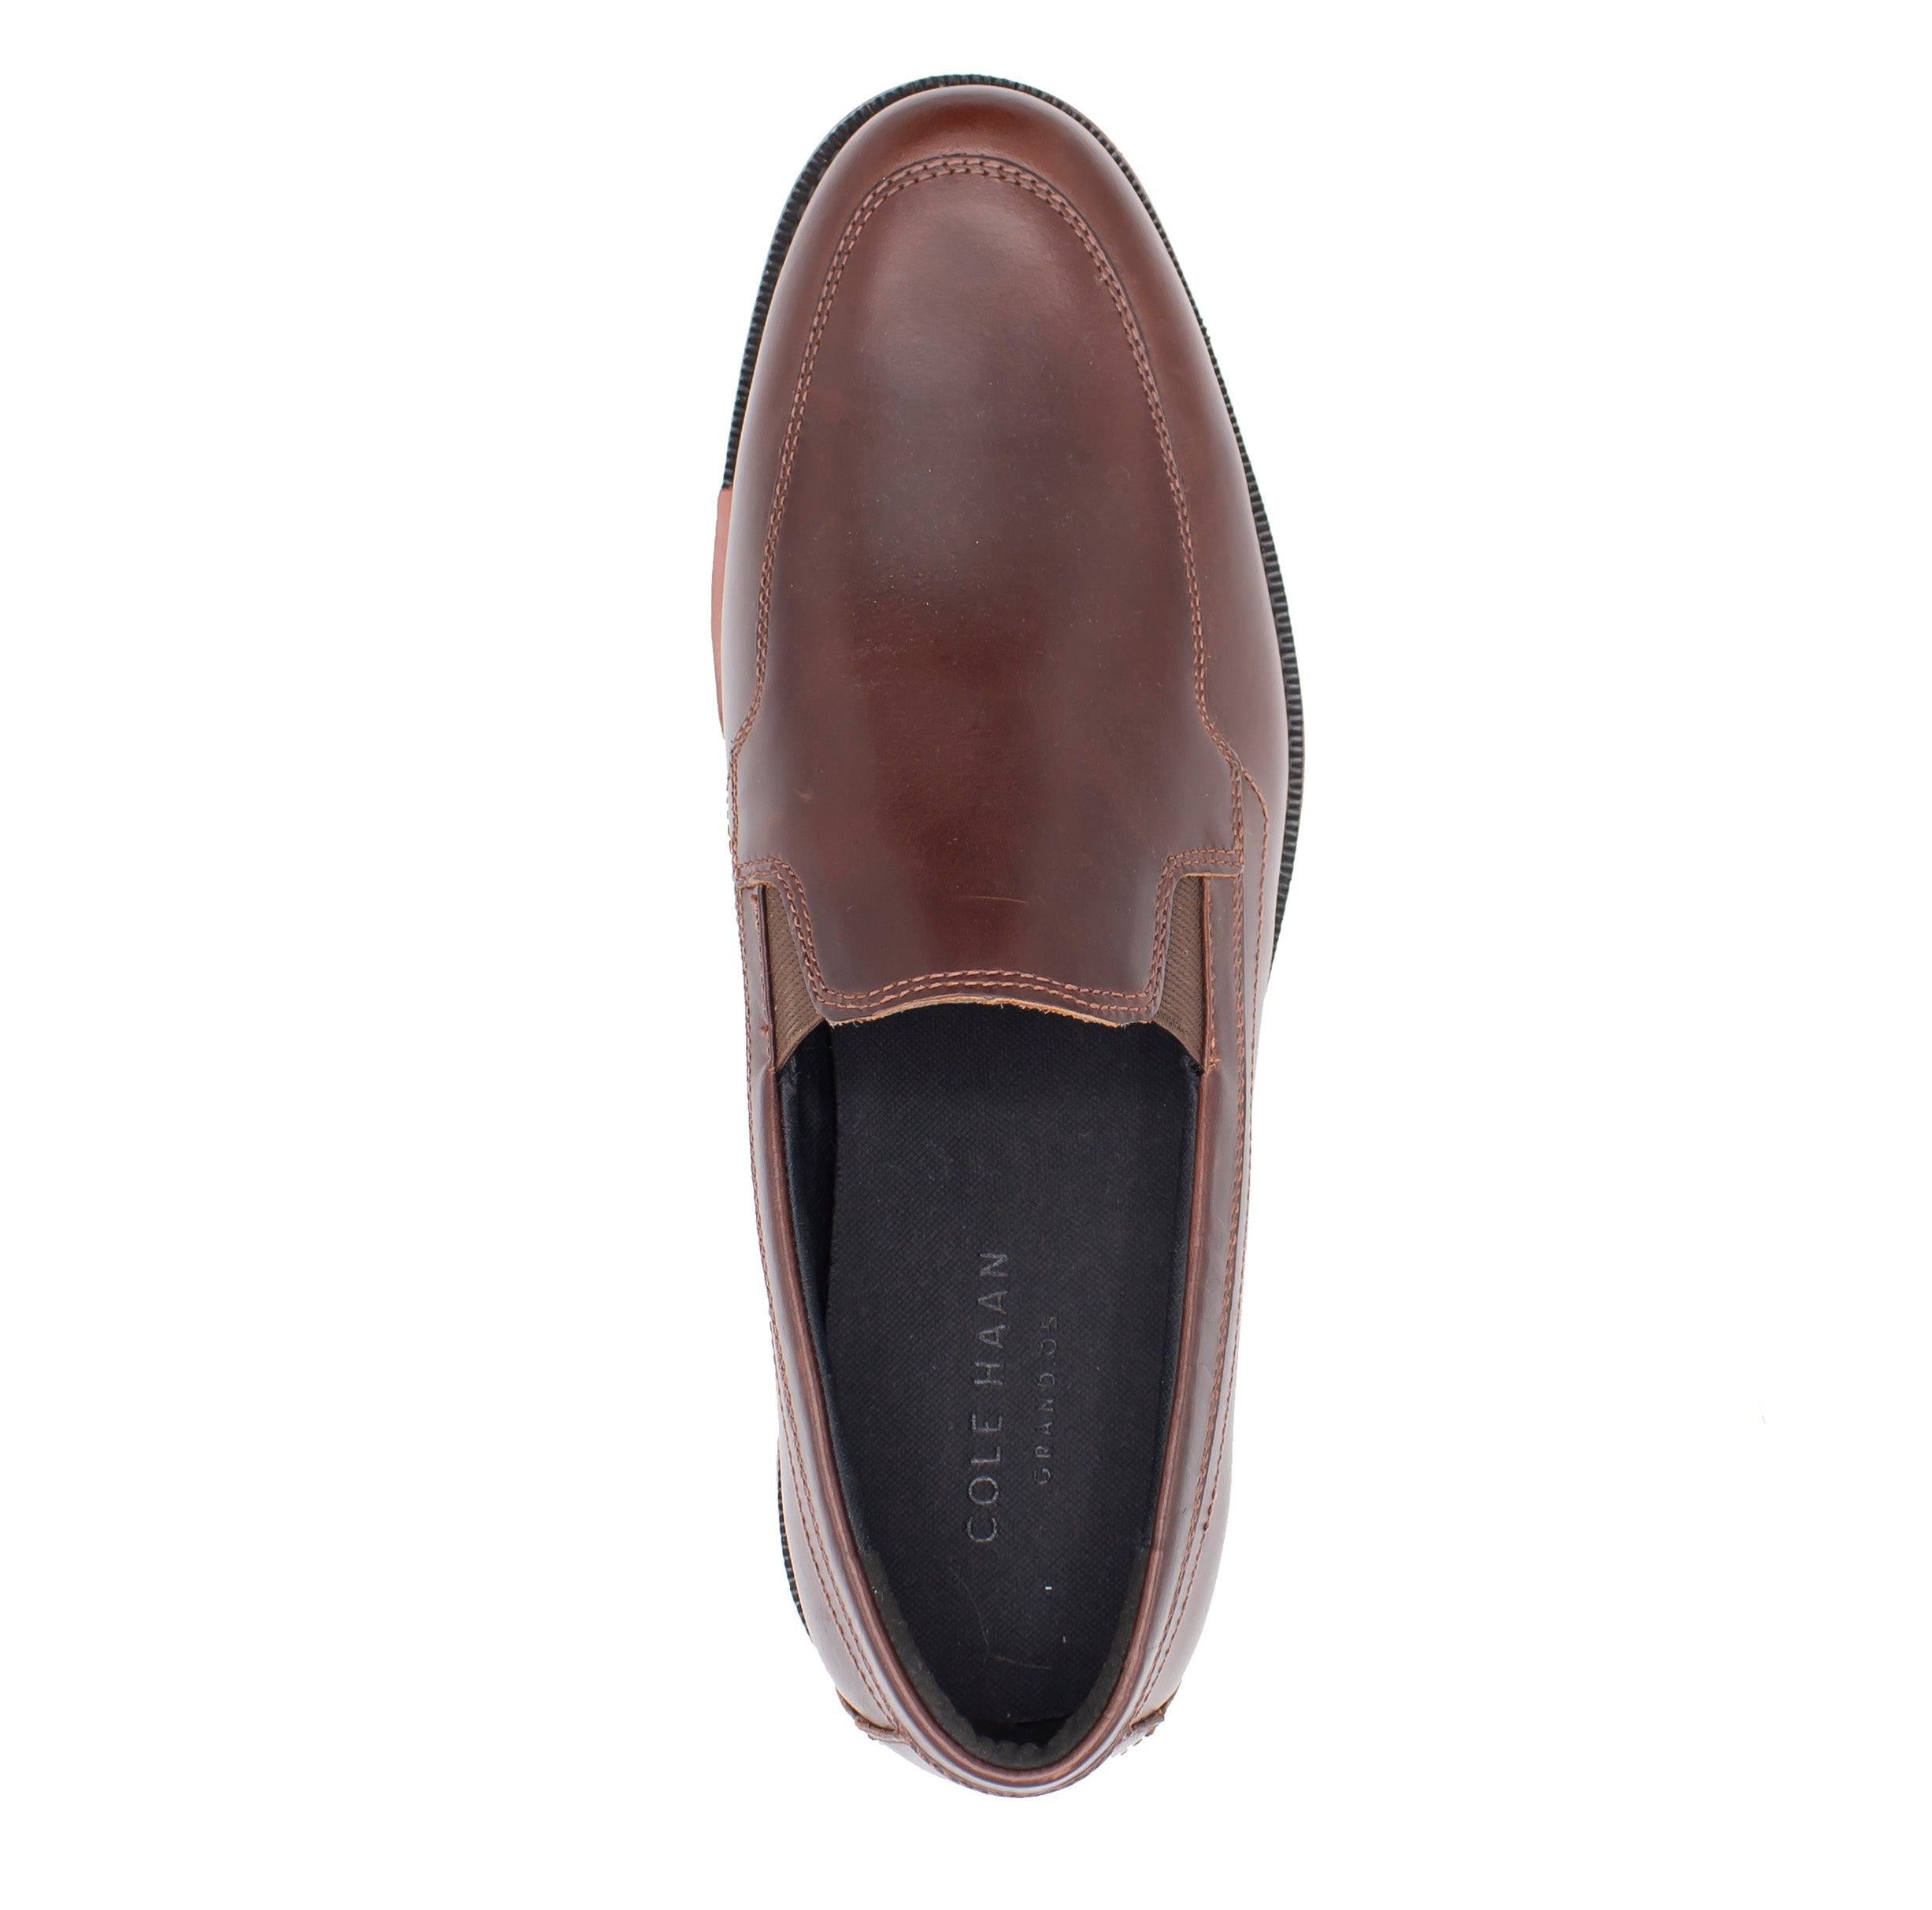 GREAT JONES VENETIAN COLE HAAN SEQUOIA